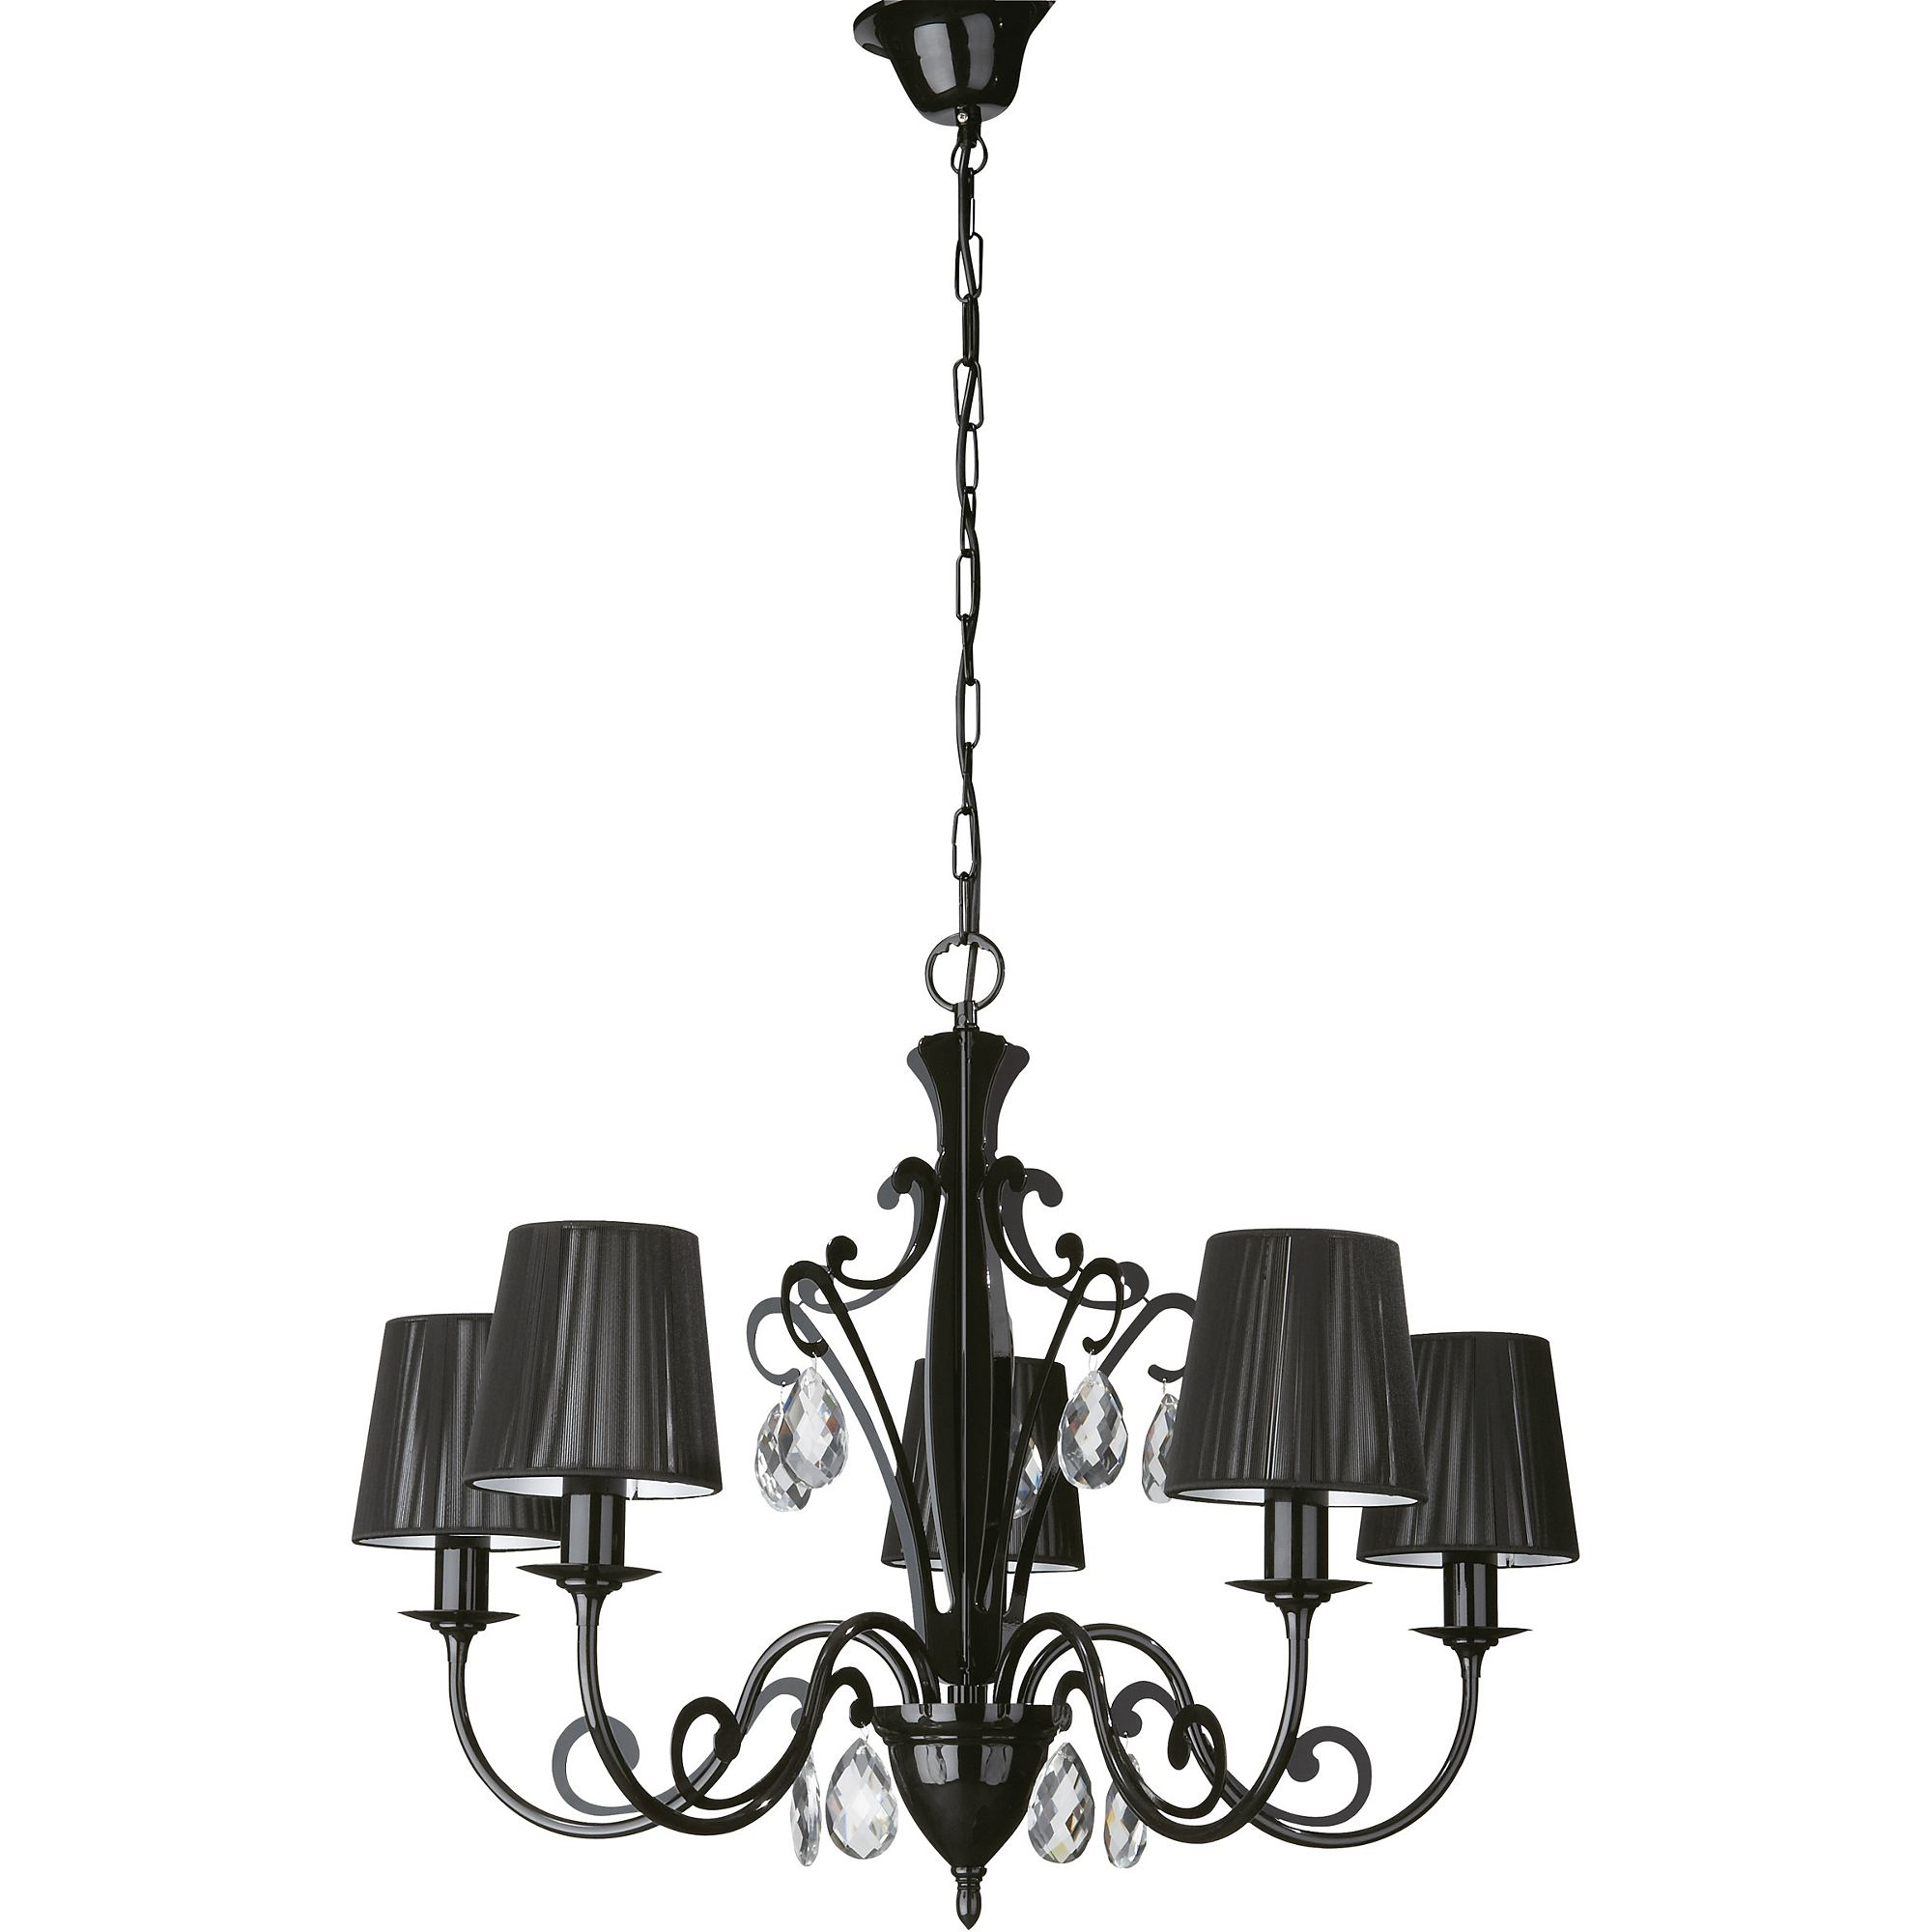 - Roomstylers 36680 Black pendant